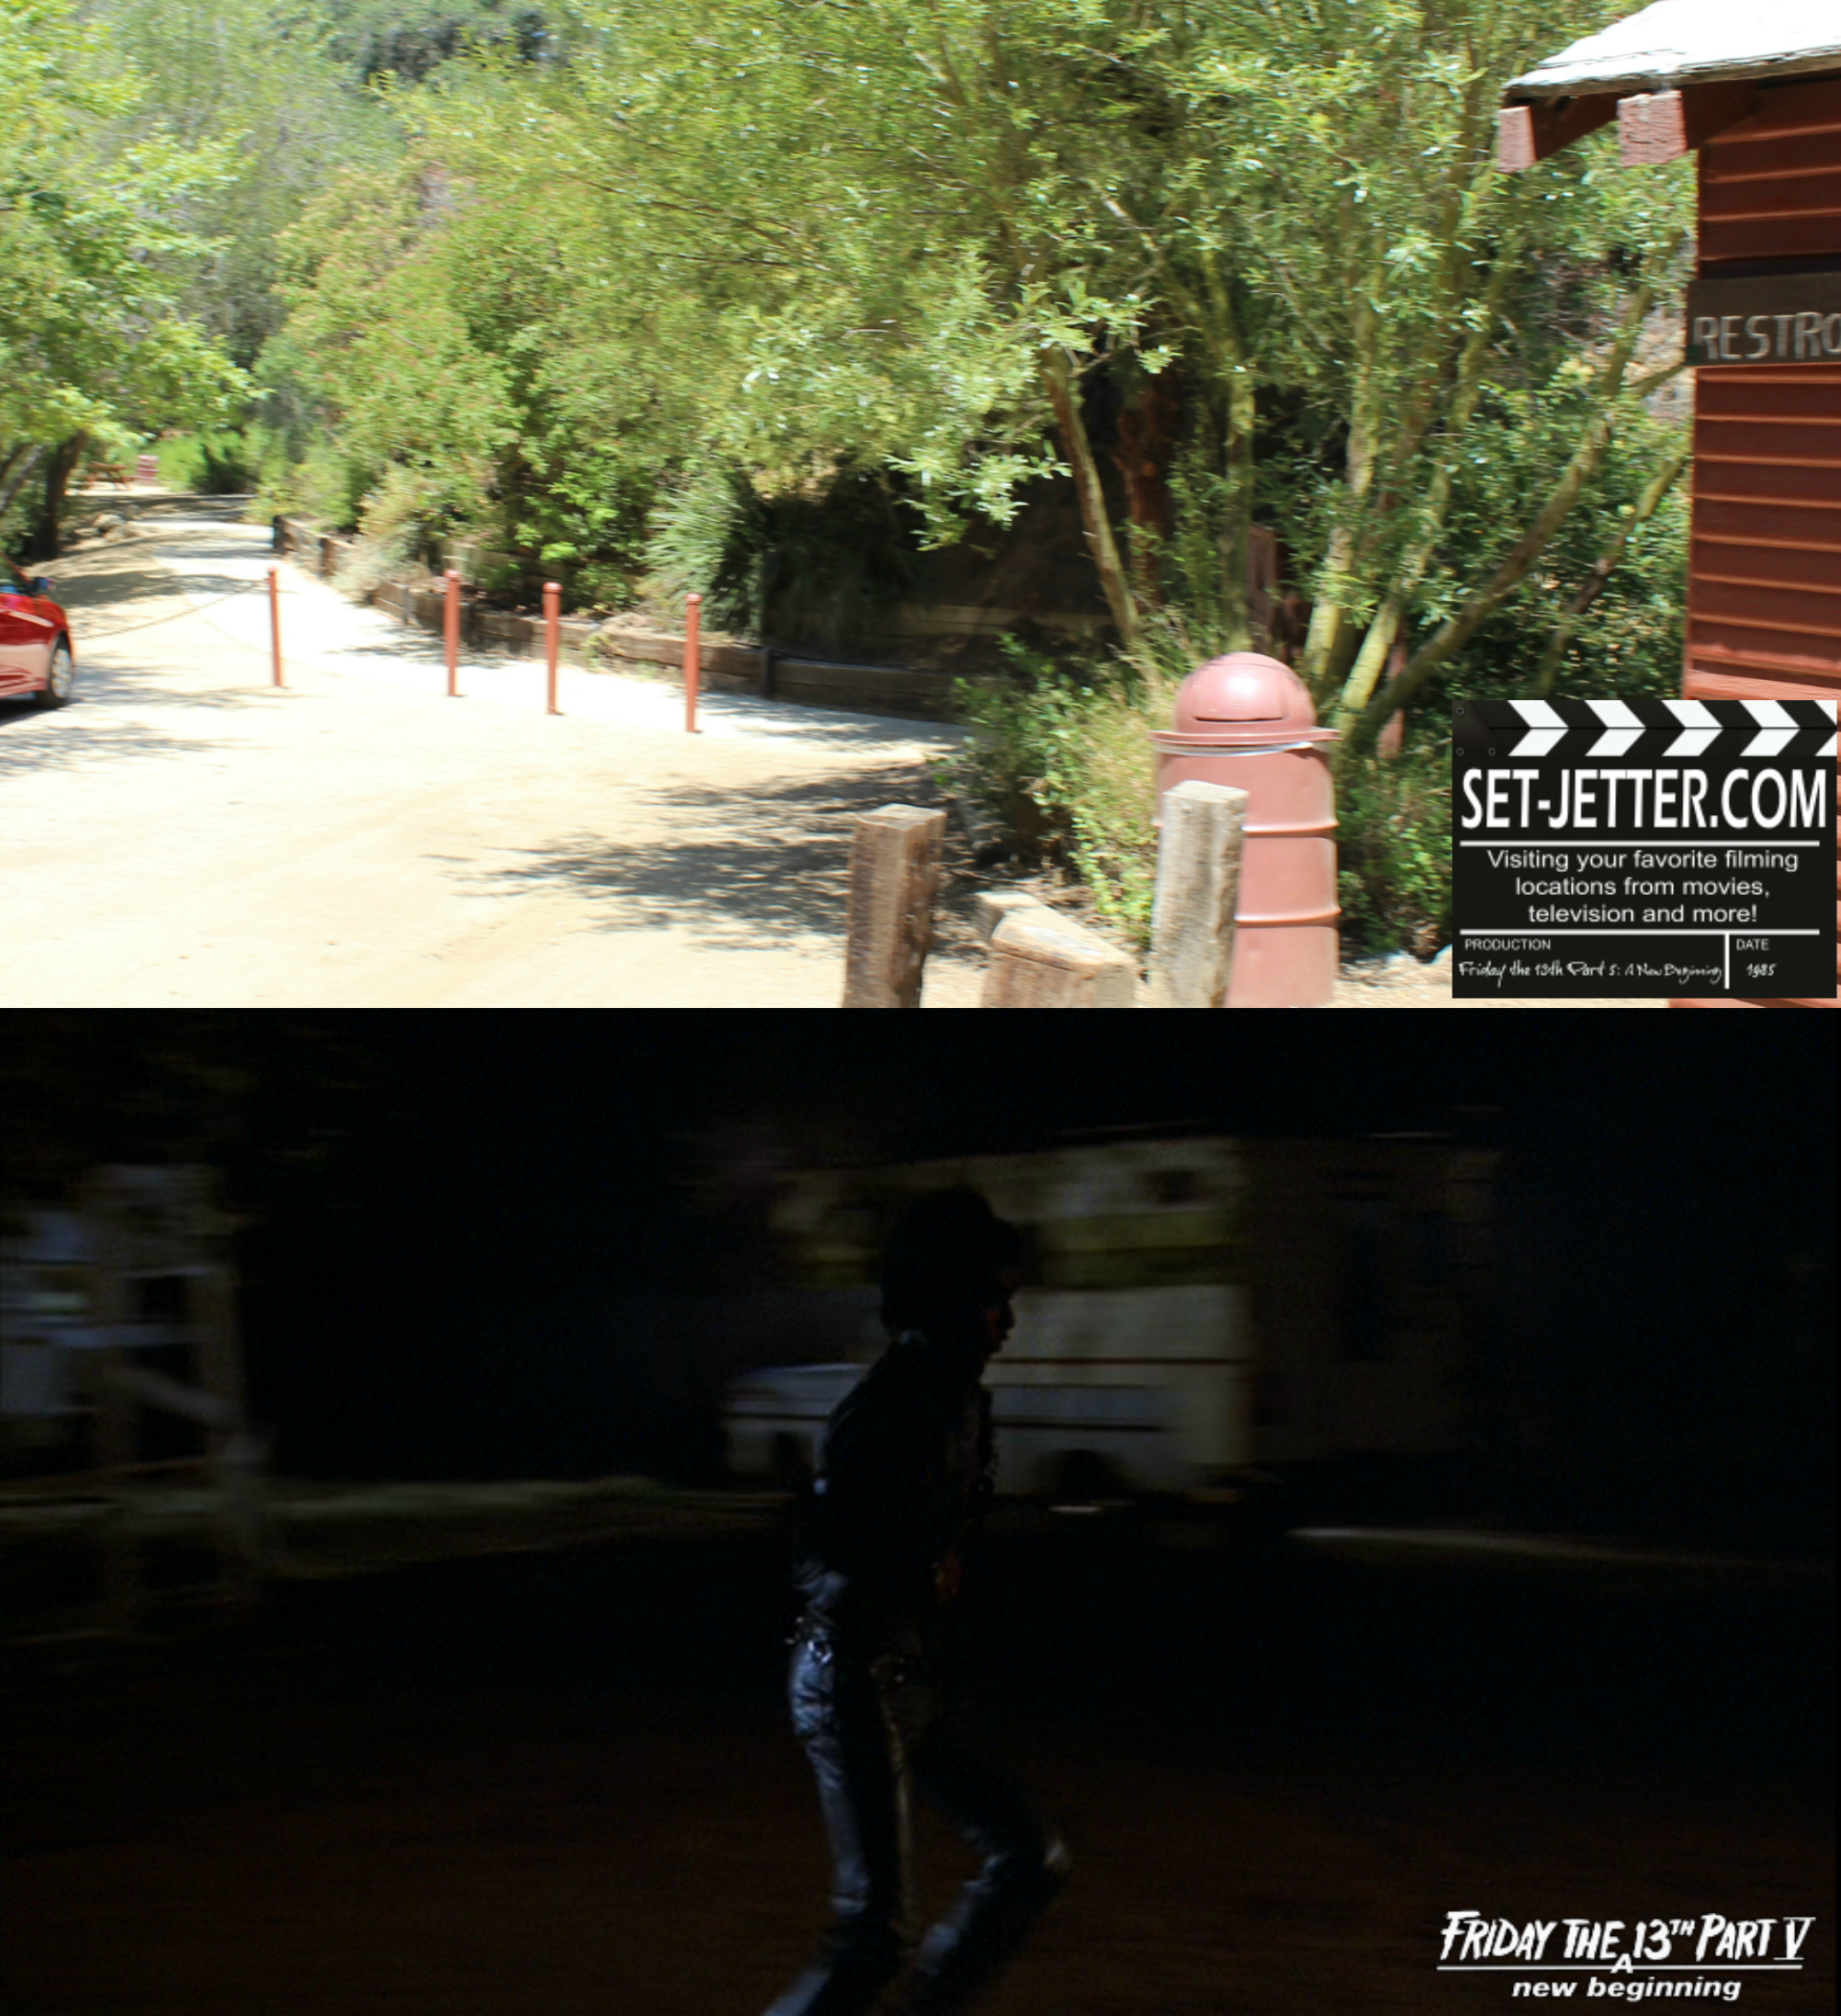 Friday the 13th Part V comparison 47.jpg